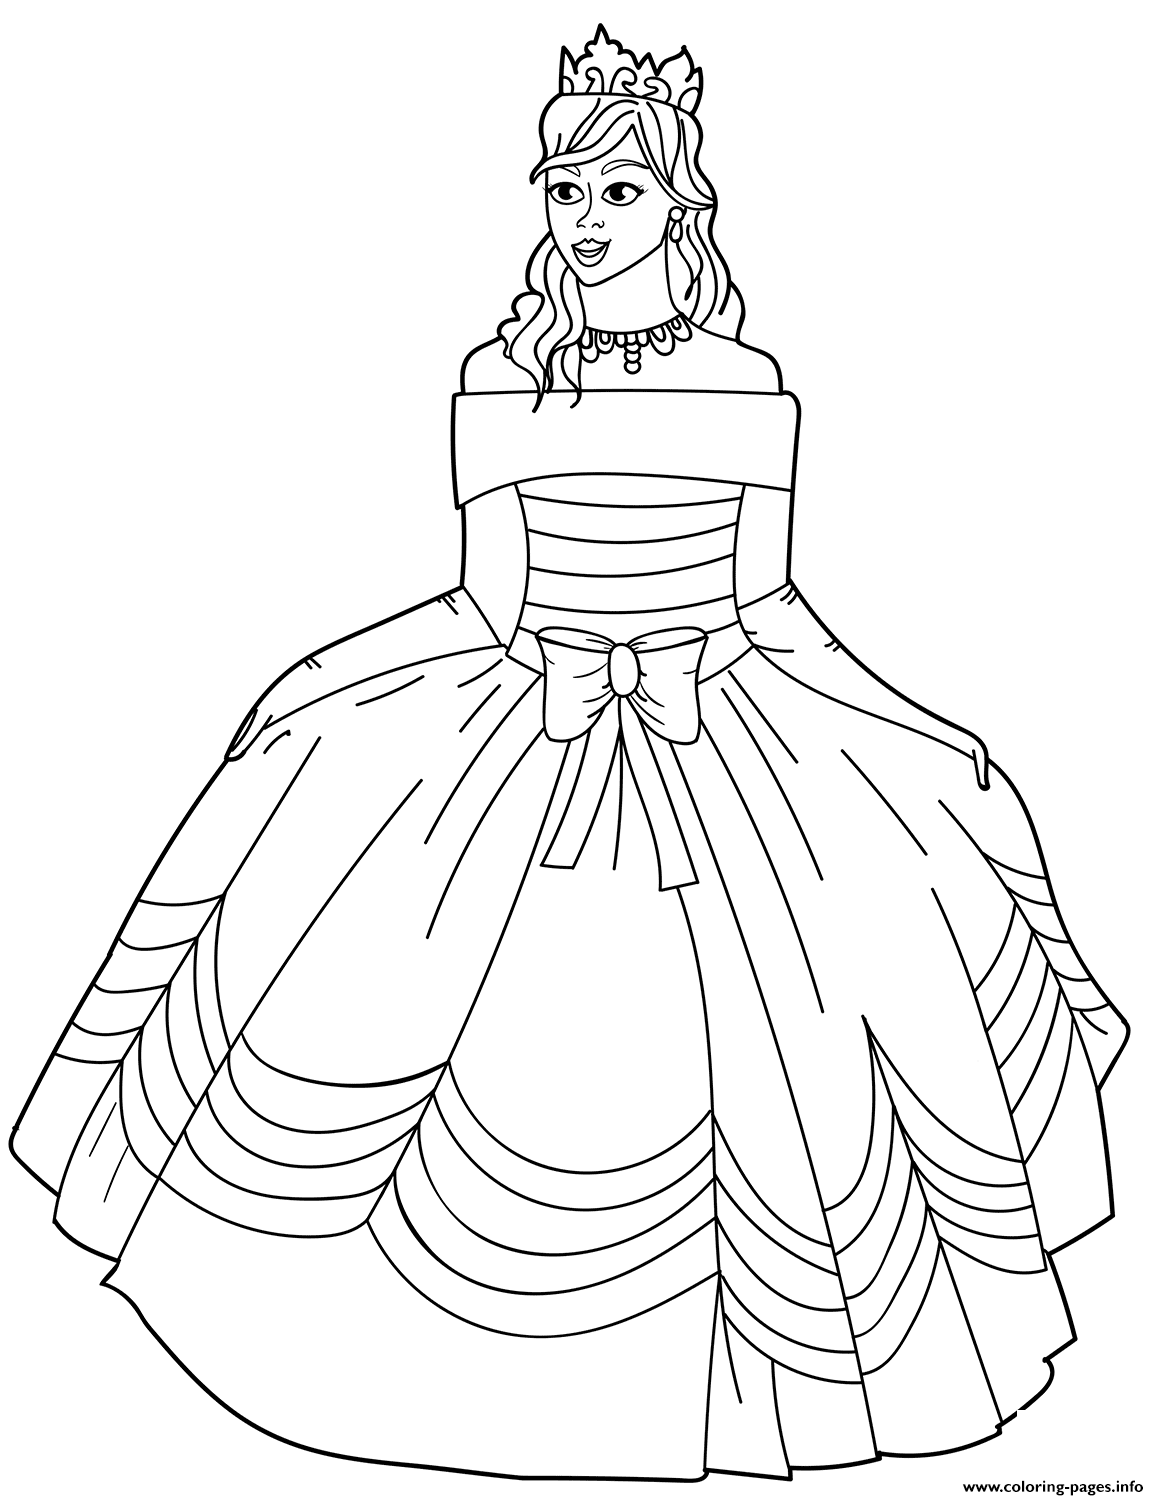 coloring page dress princess in ball gown off the shoulder dress coloring page dress coloring